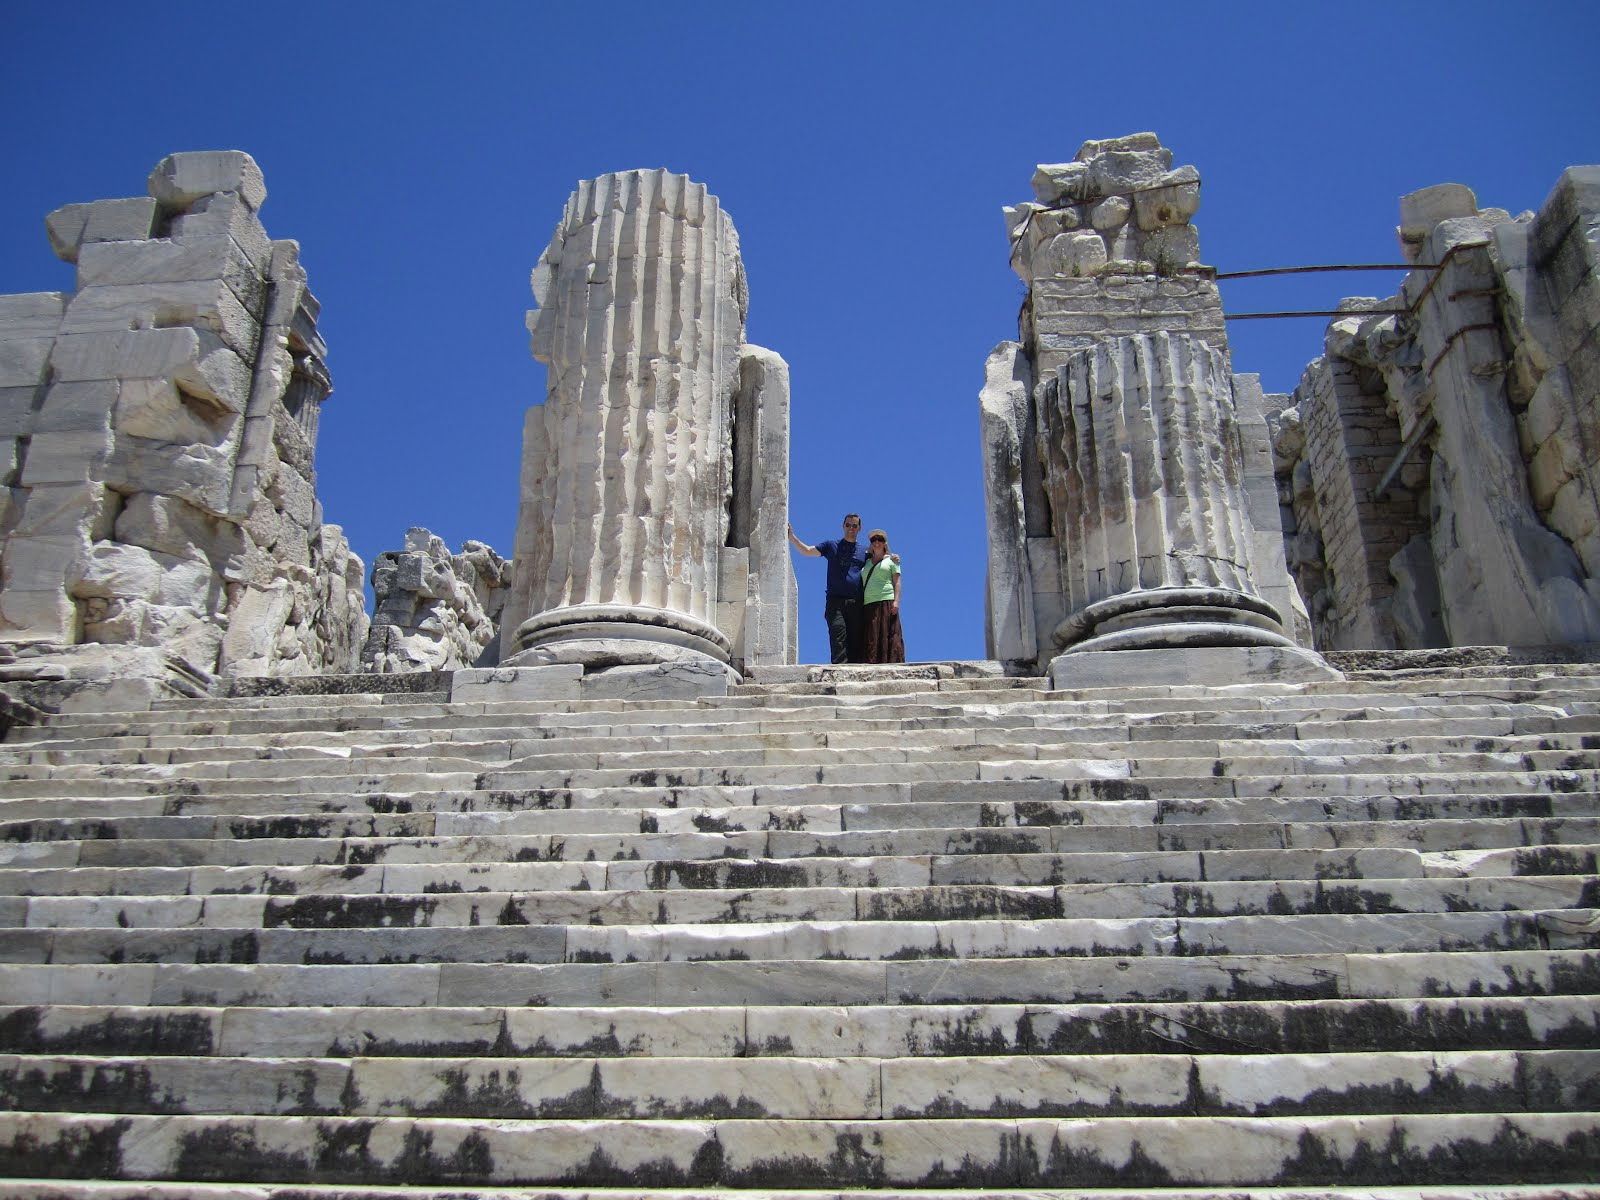 Travels...: Turkey Day 1 -- Didyma